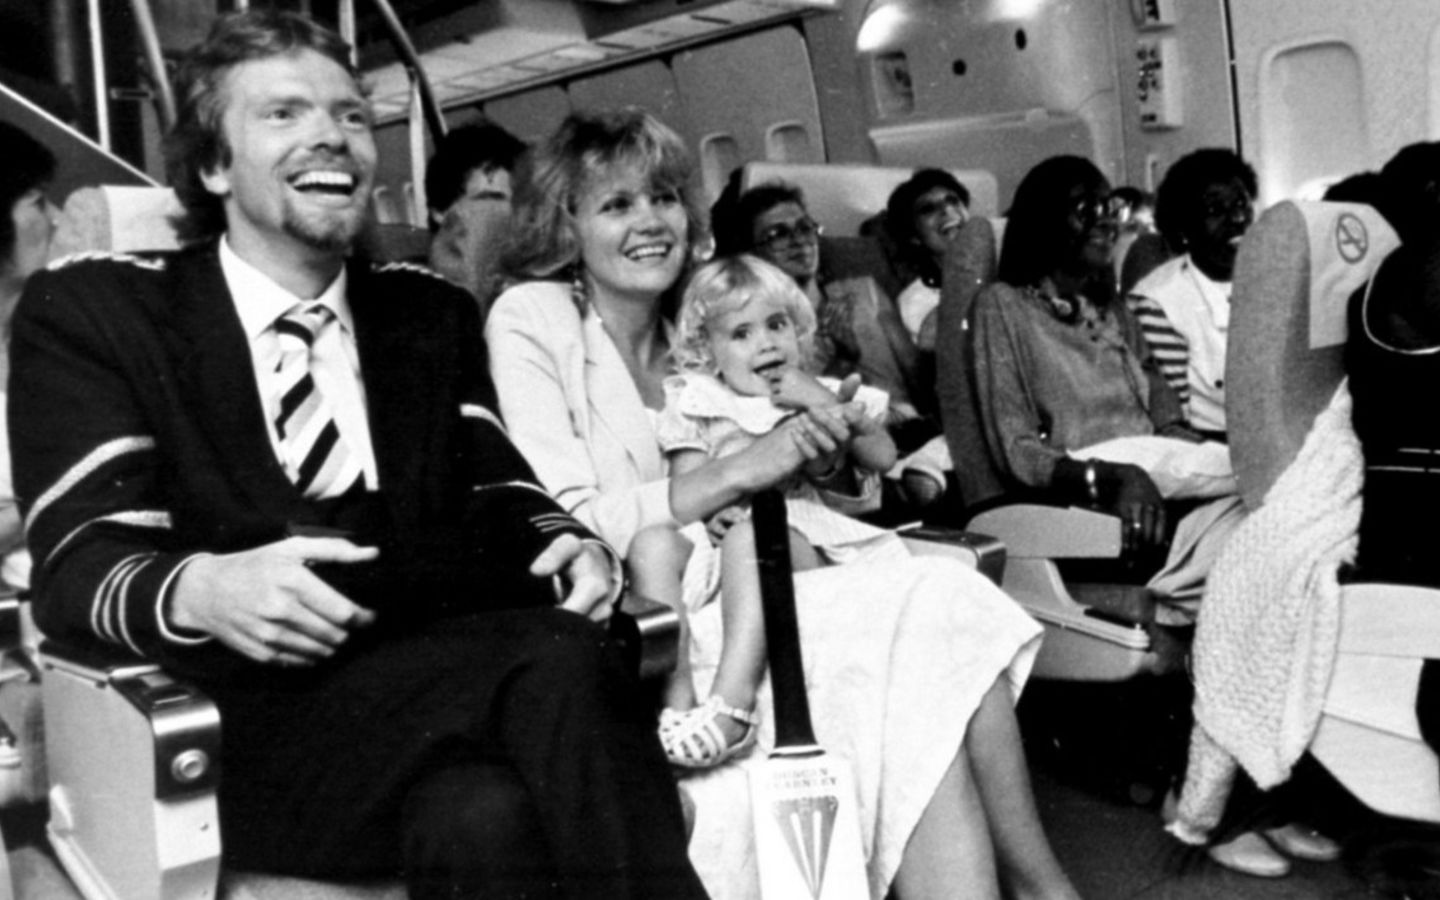 Richard Branson with his wife Joan and their daughter Holly on the inaugural Virgin Atlantic flight